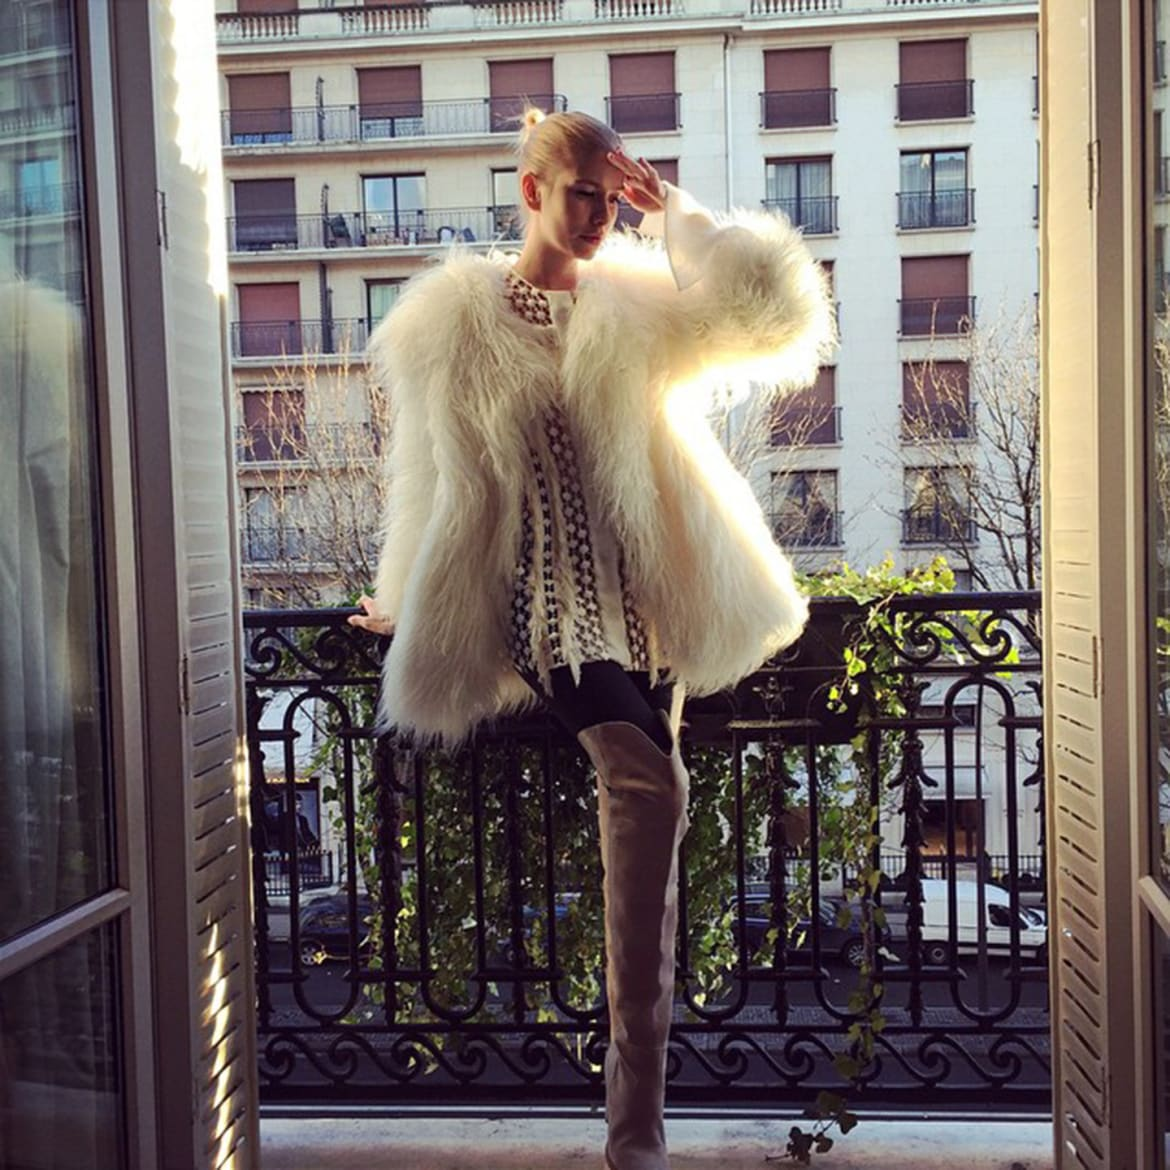 Model Elena Perminova told how she got in shape after giving birth